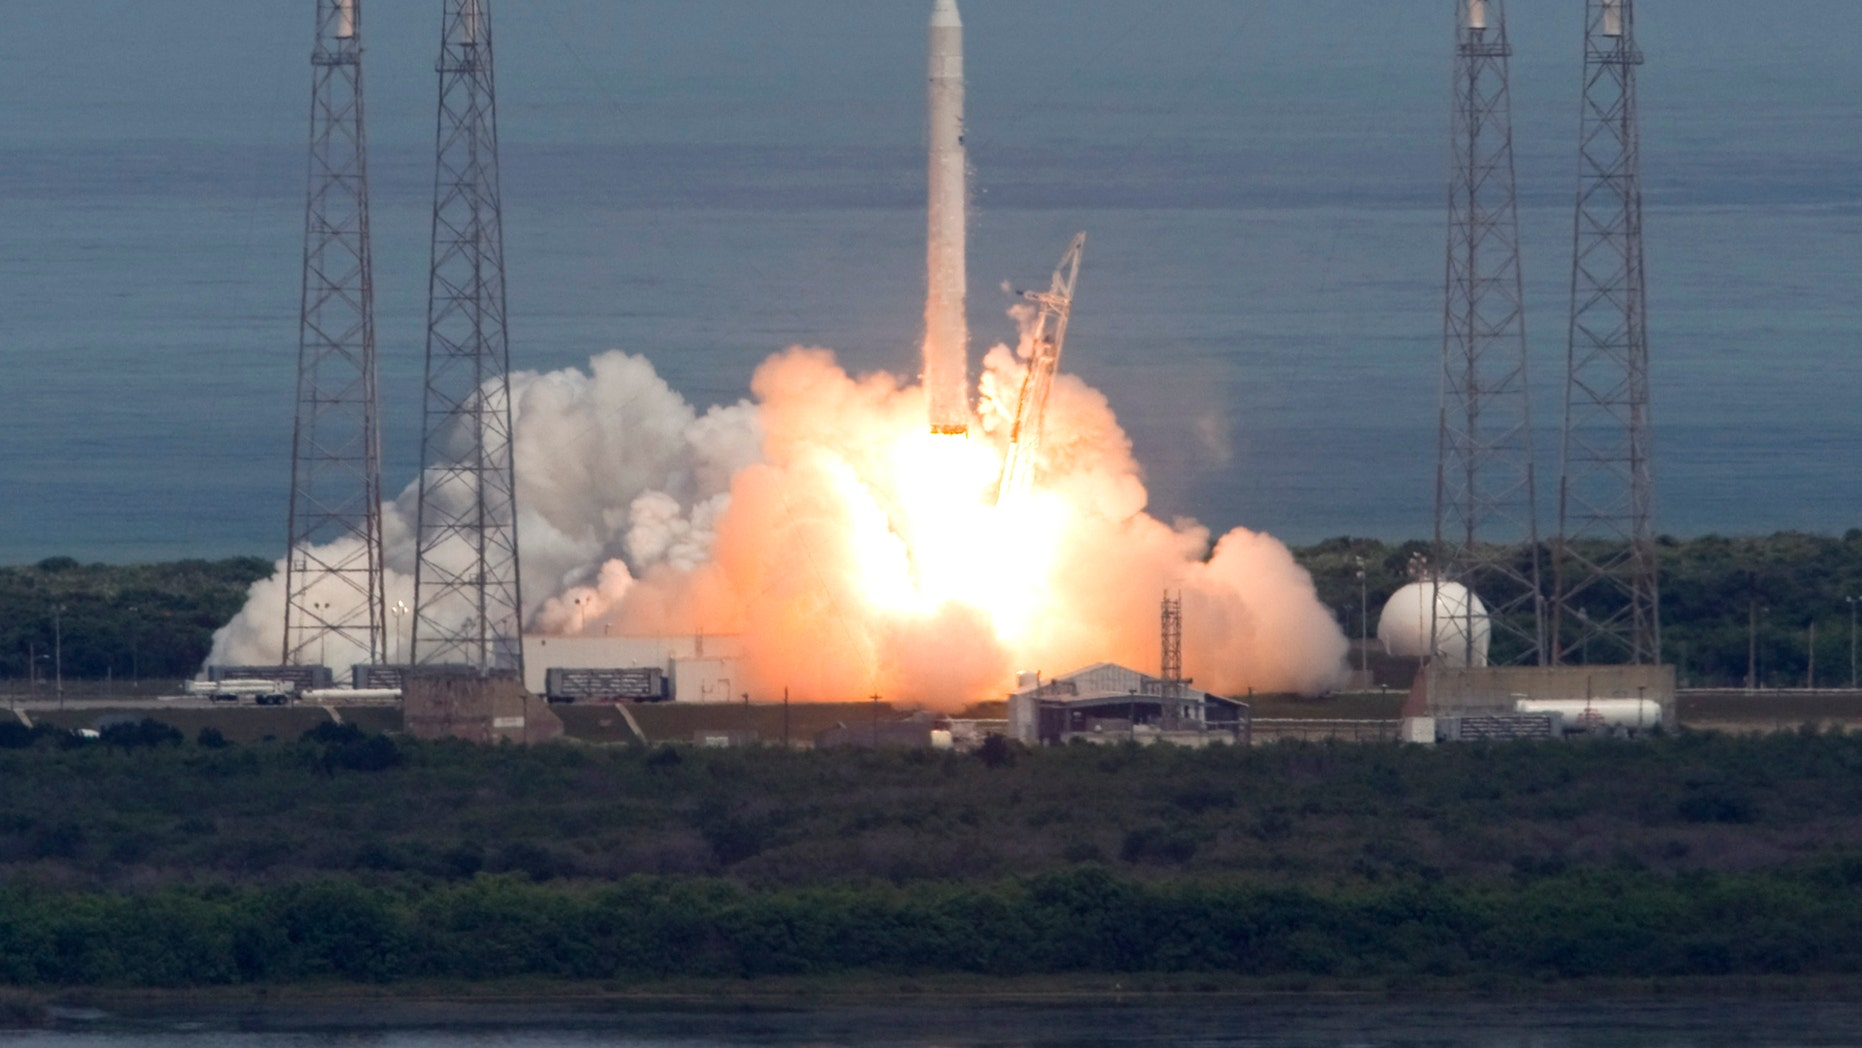 File photo - The SpaceX Falcon 9 rocket lifts off from launch complex 40 at the Cape Canaveral Air Force Station in Cape Canaveral, Florida June 4, 2010. (REUTERS/Scott Audette)